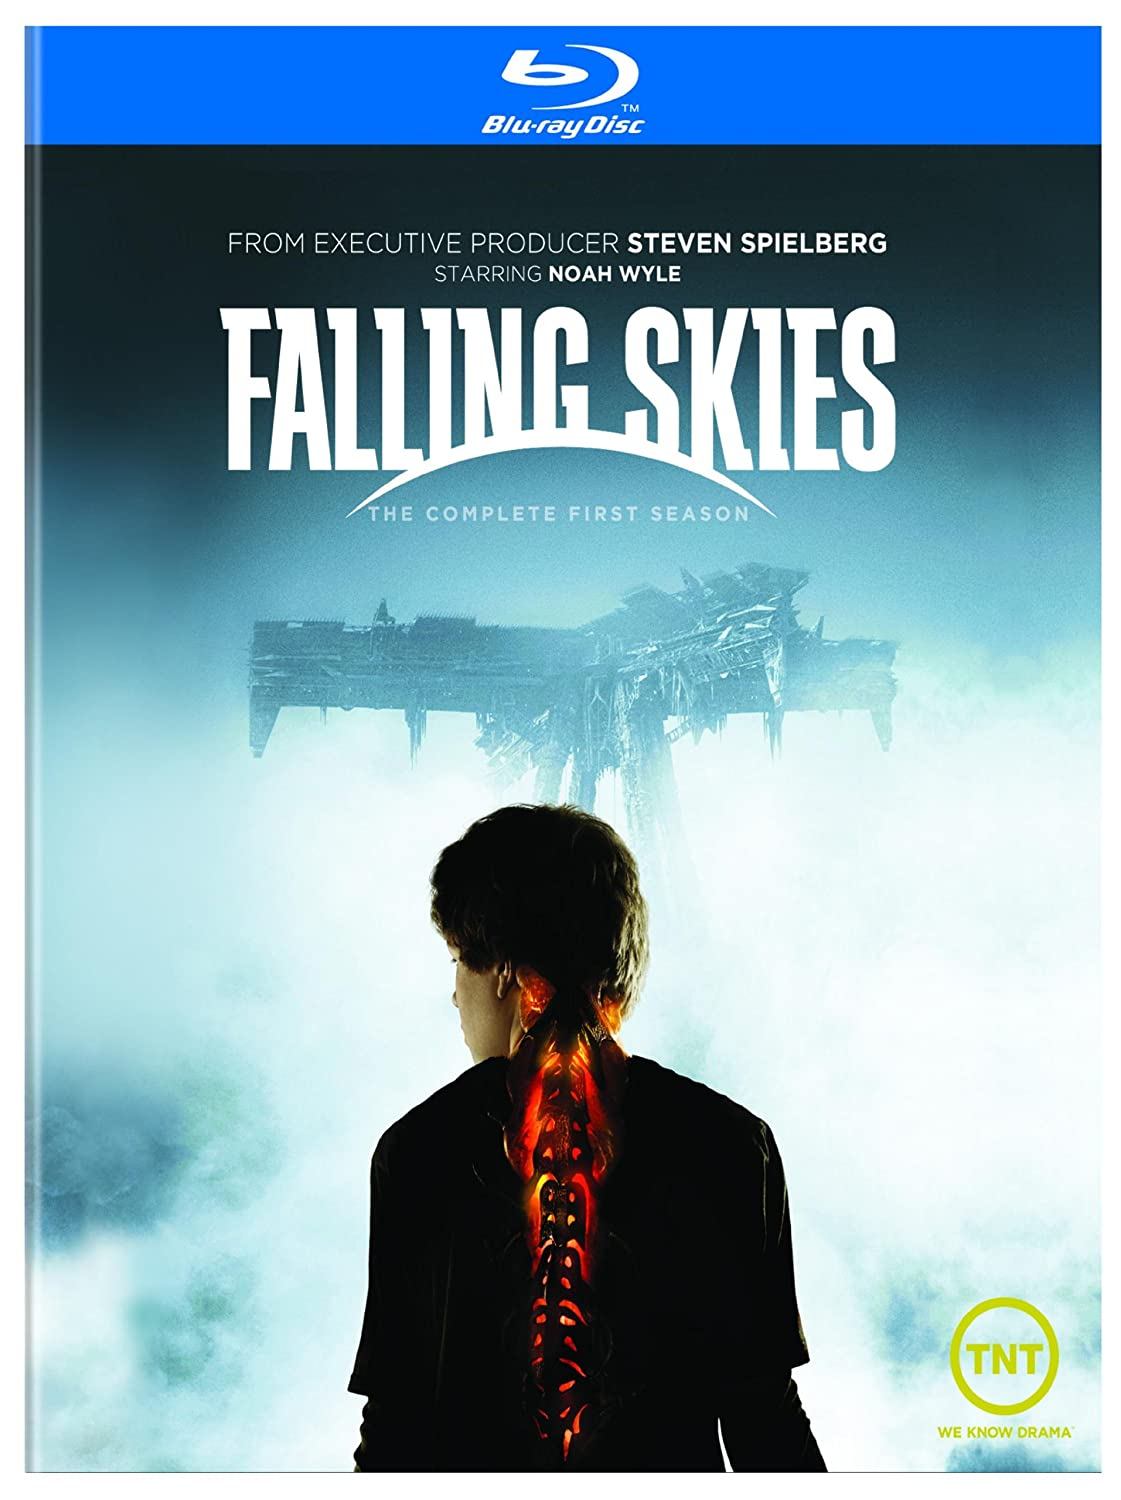 Falling Skies: The Complete First Season [Blu-ray] $19.96